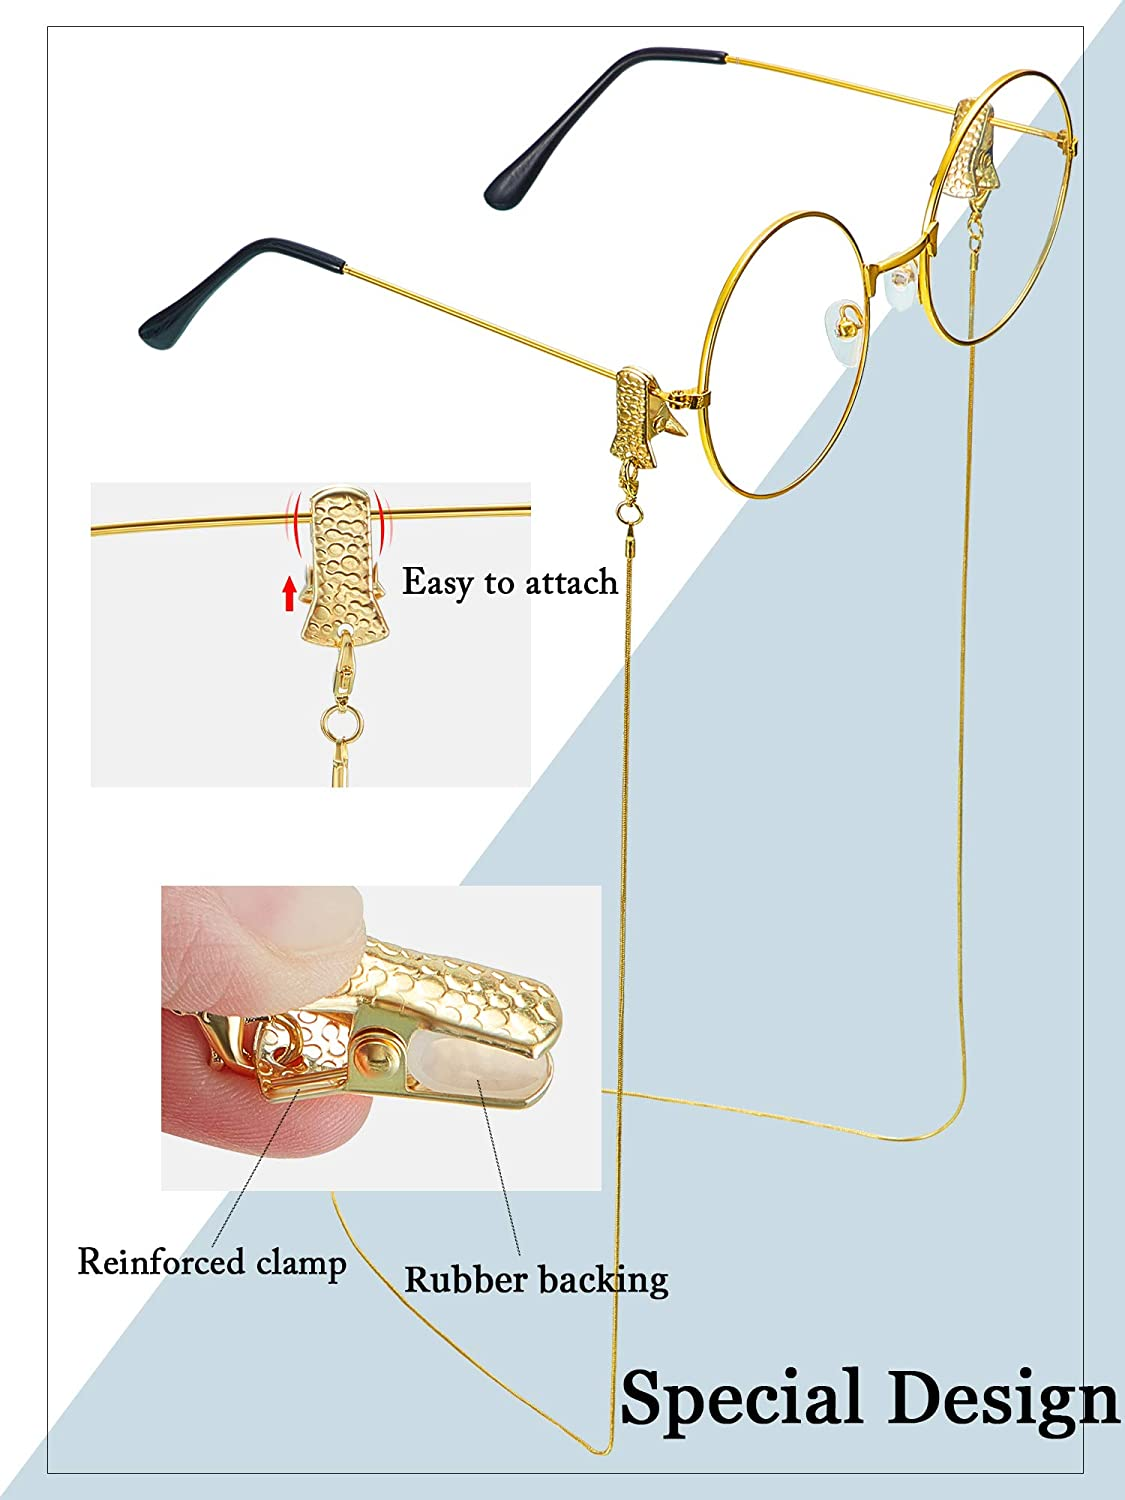 6 Pieces Eyeglass Chains Metal Eyeglass Chains with Clips Beaded Eyeglasses Chain with Alligator Clamps Face Covering Holder Chains with Non-Slip Clips